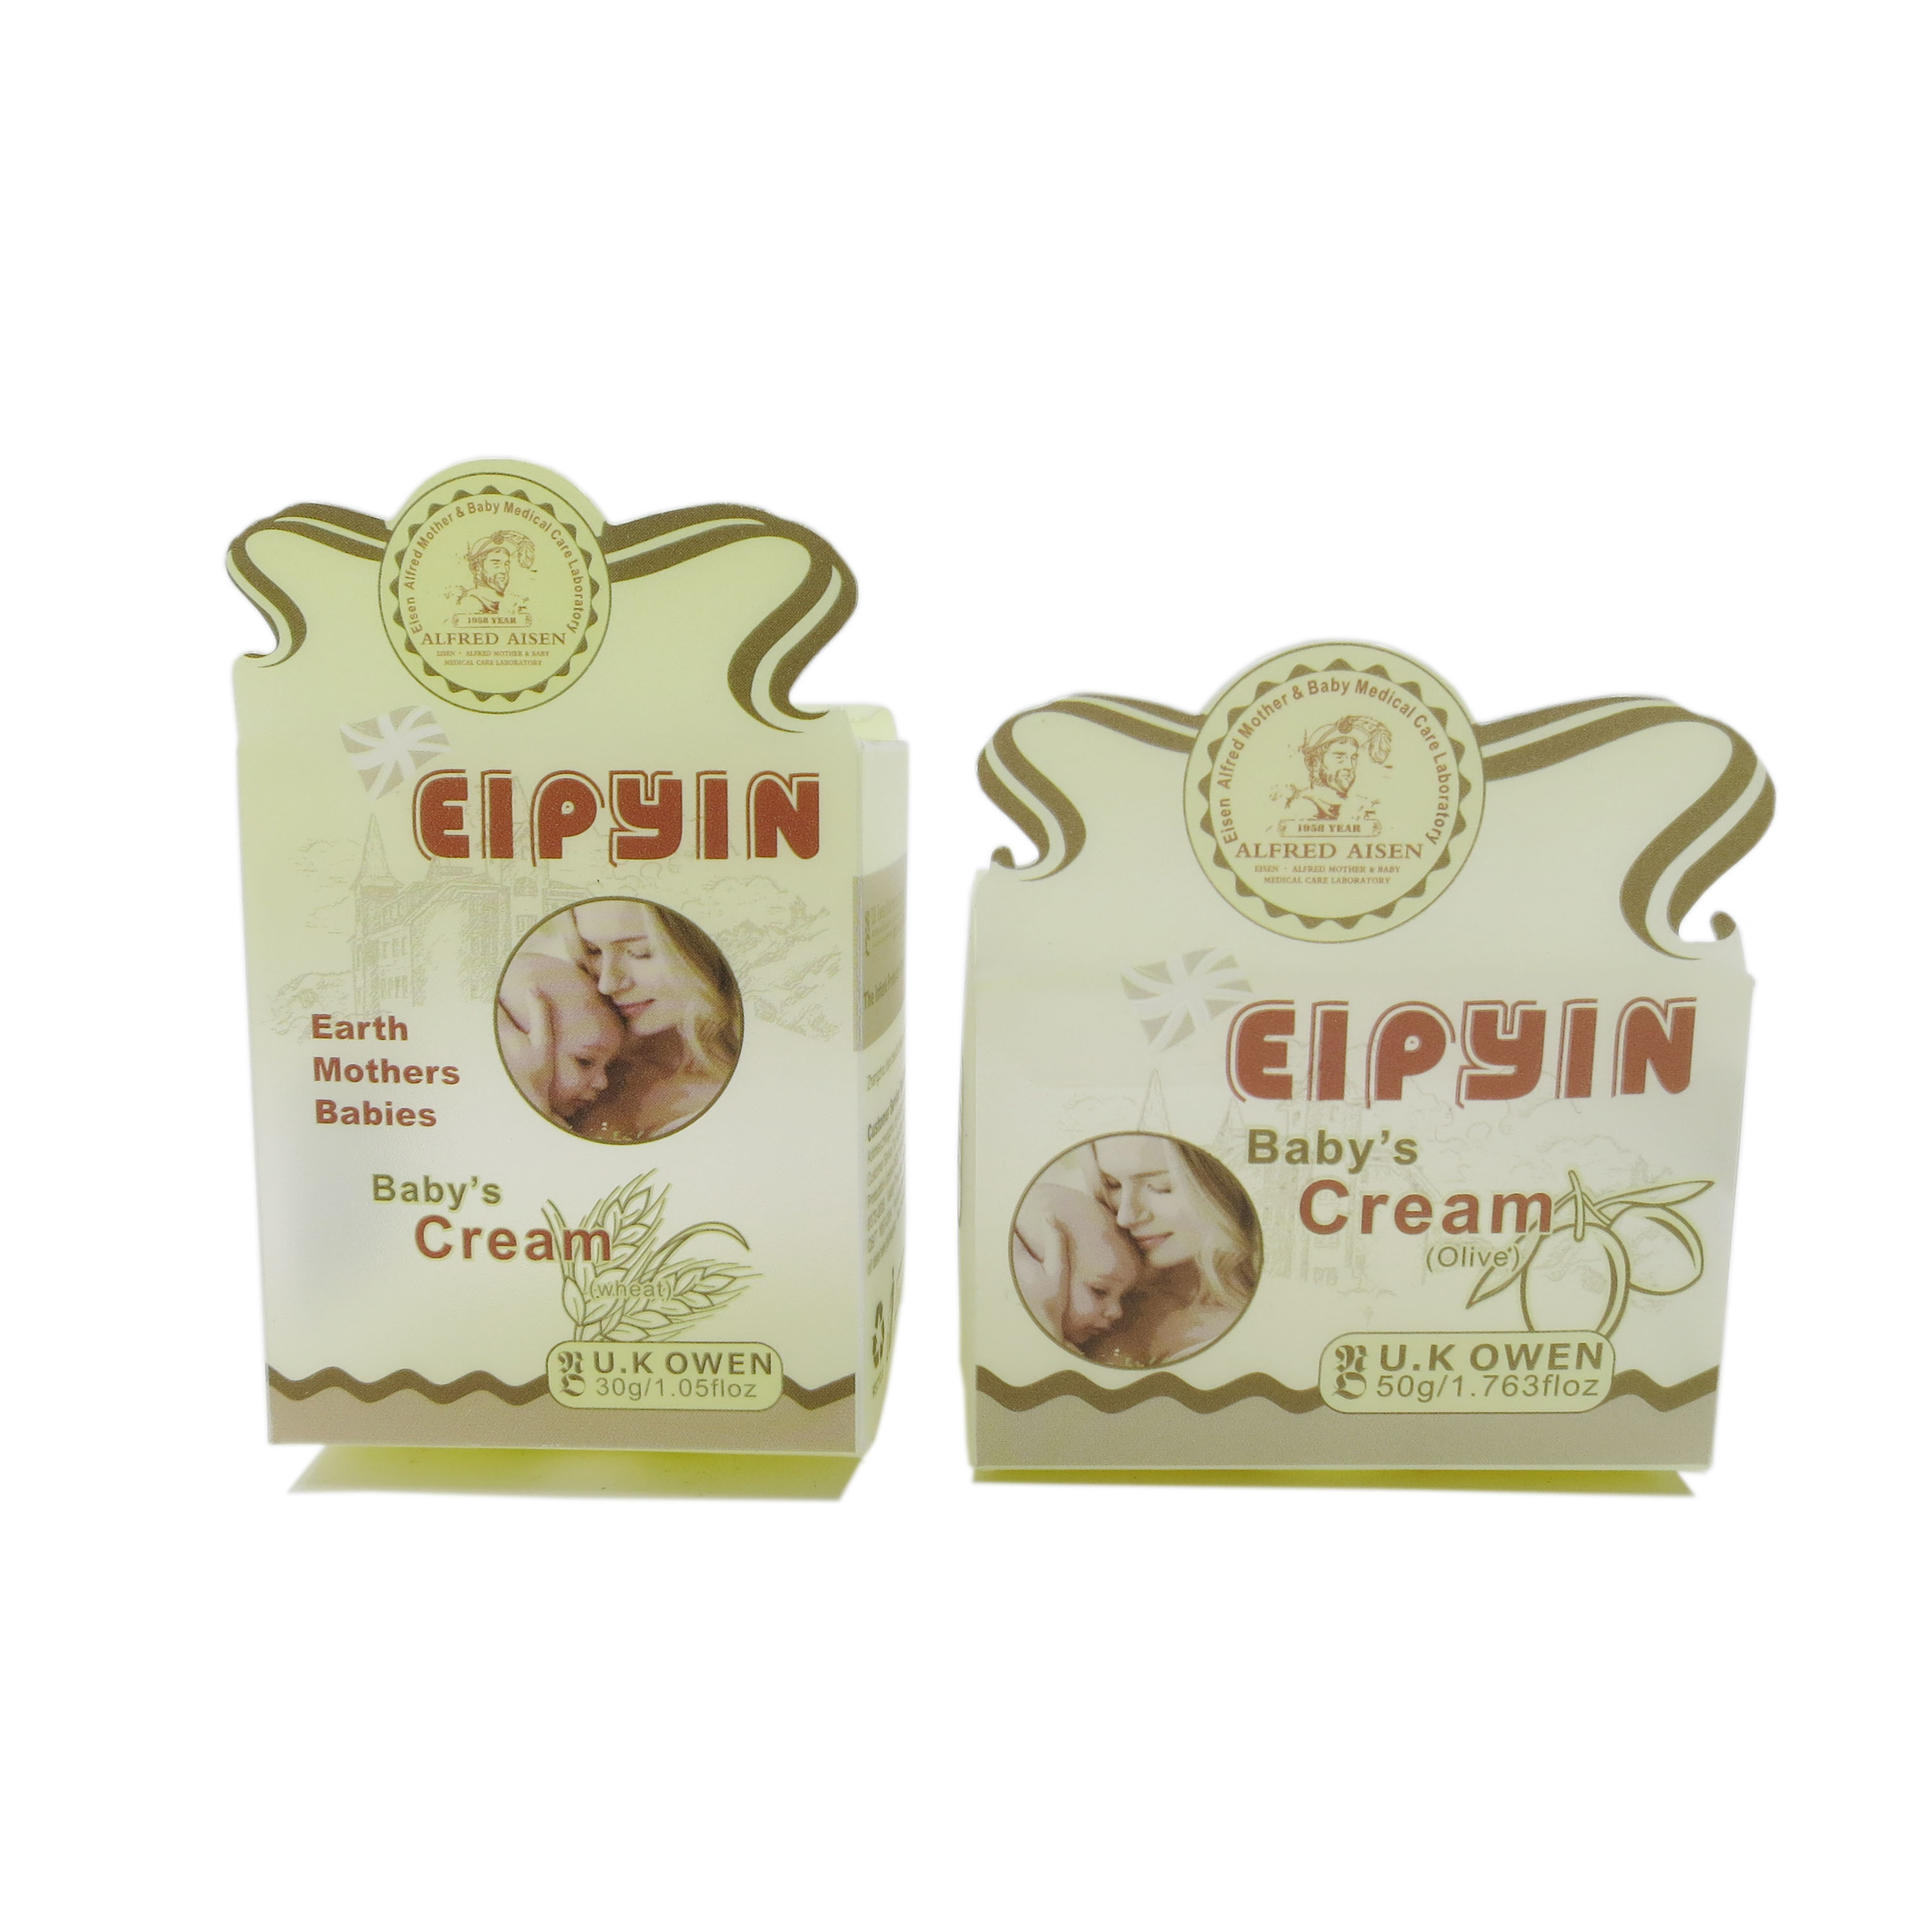 Custom Skin Care Packaging with Exterior AD Panel & Cut-out